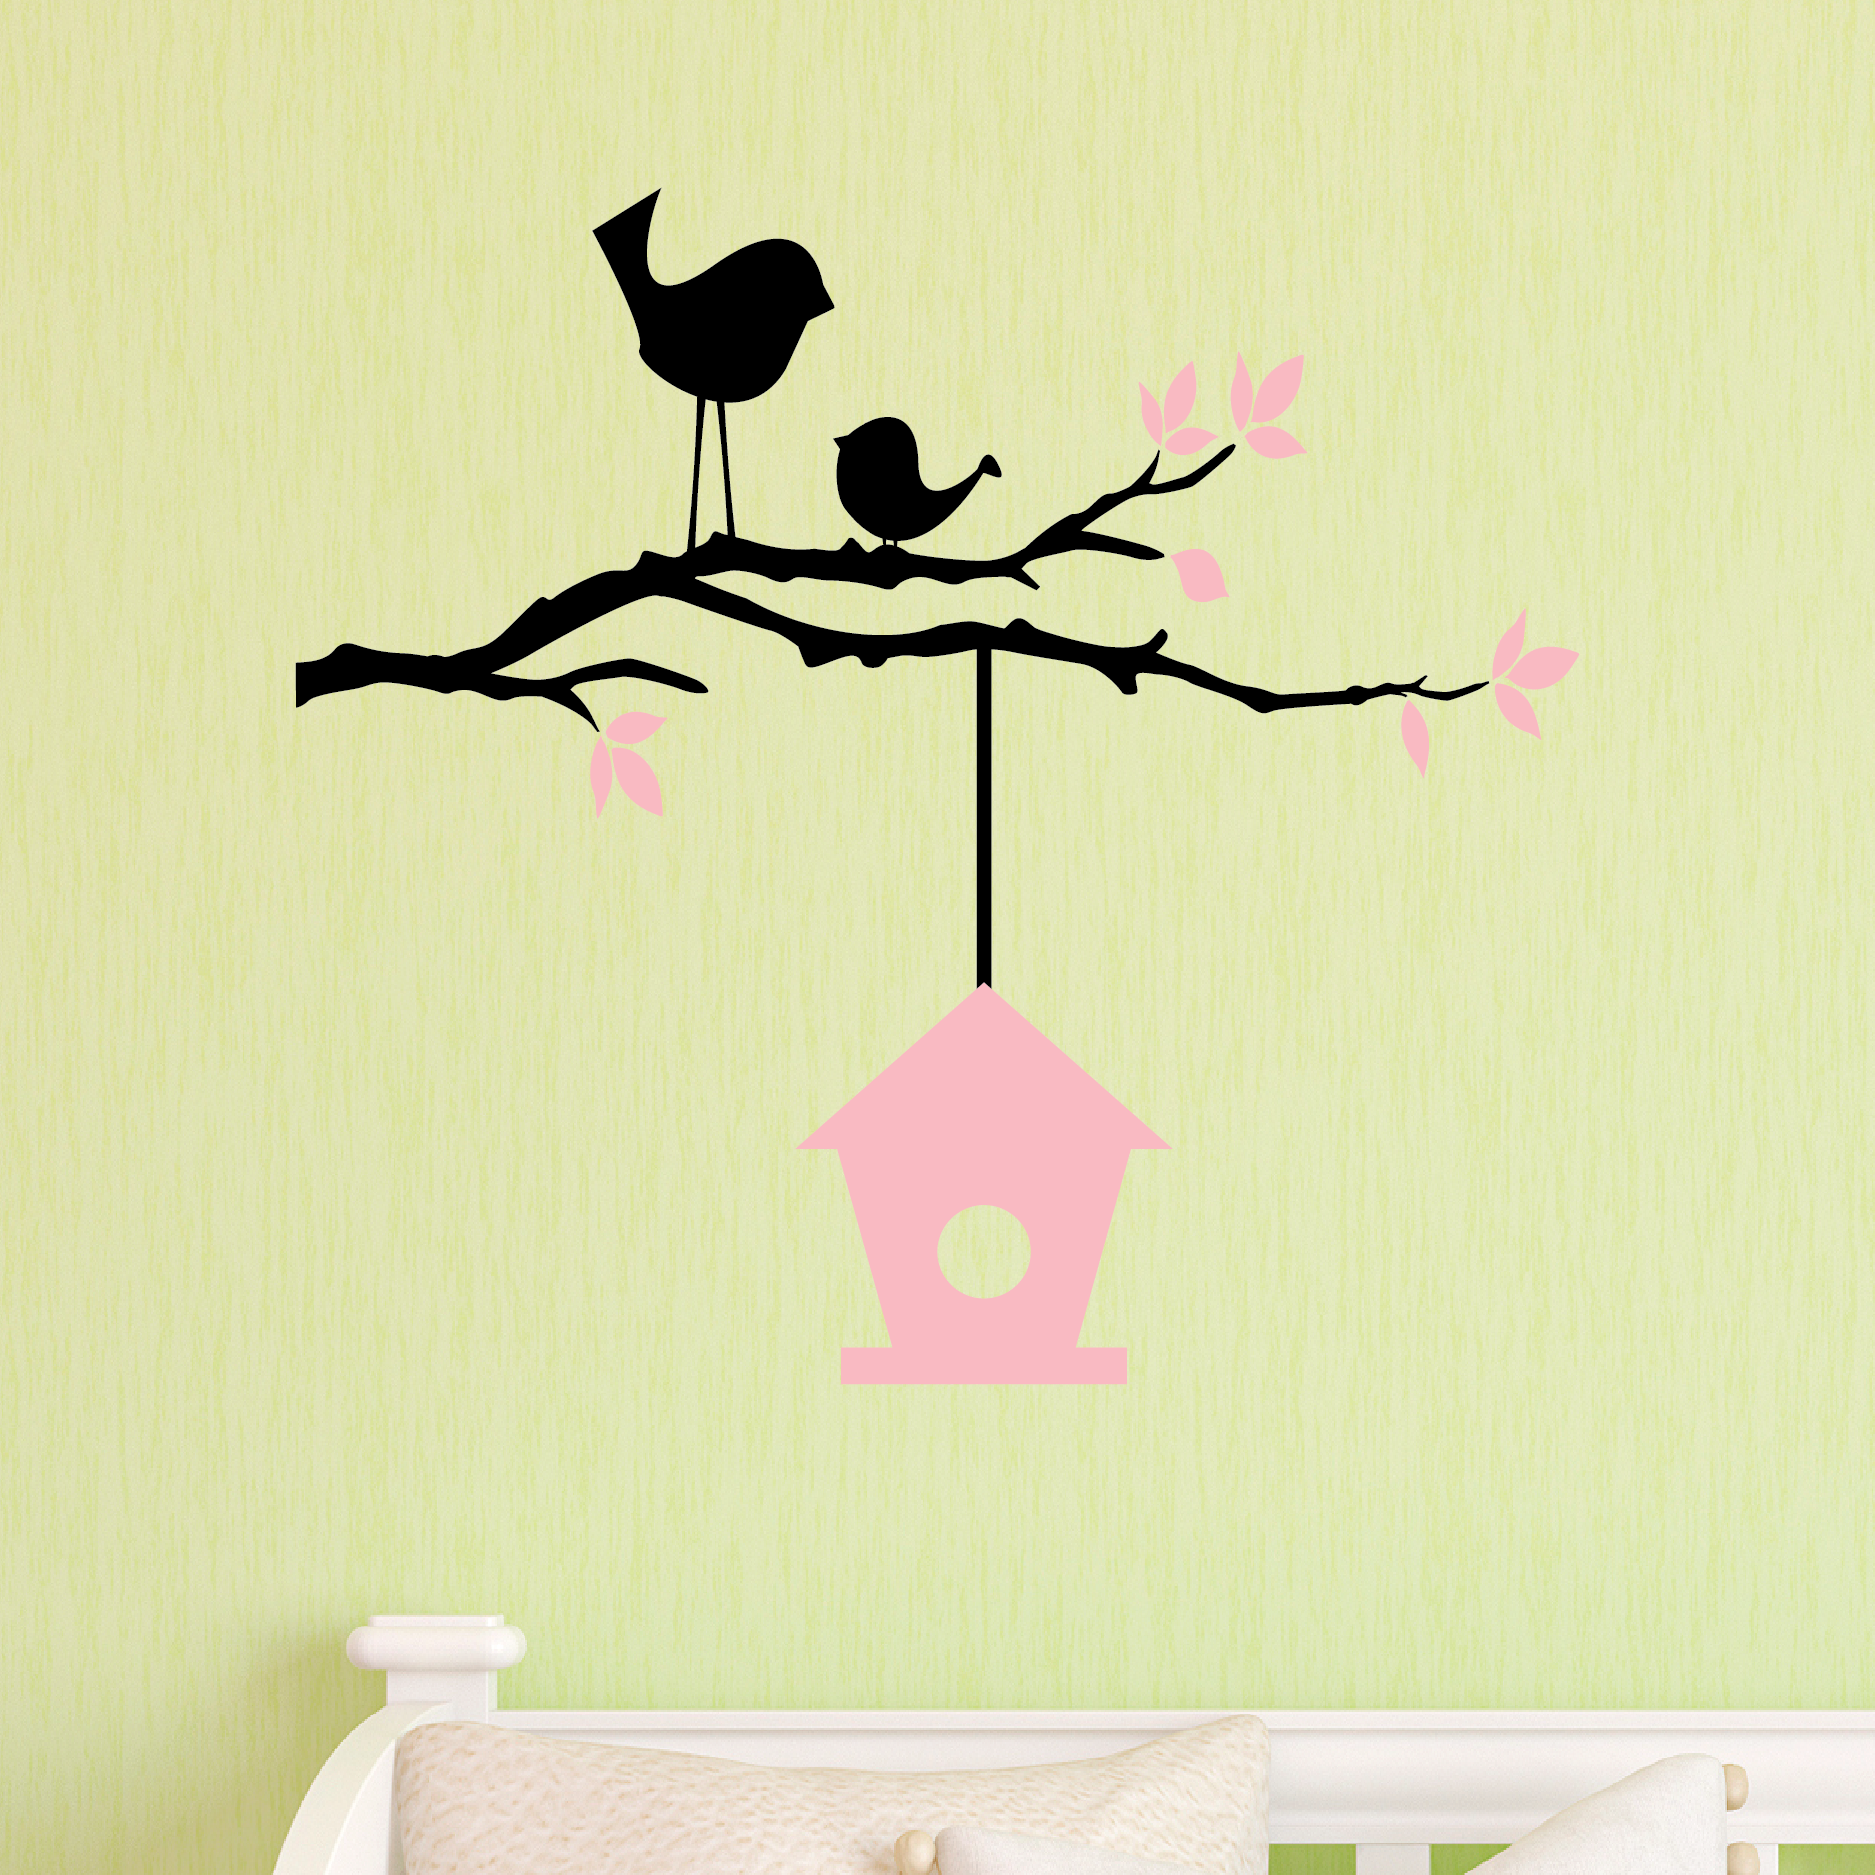 birds nursery wall quotes decal wallquotes com birds on branch with birdhouse